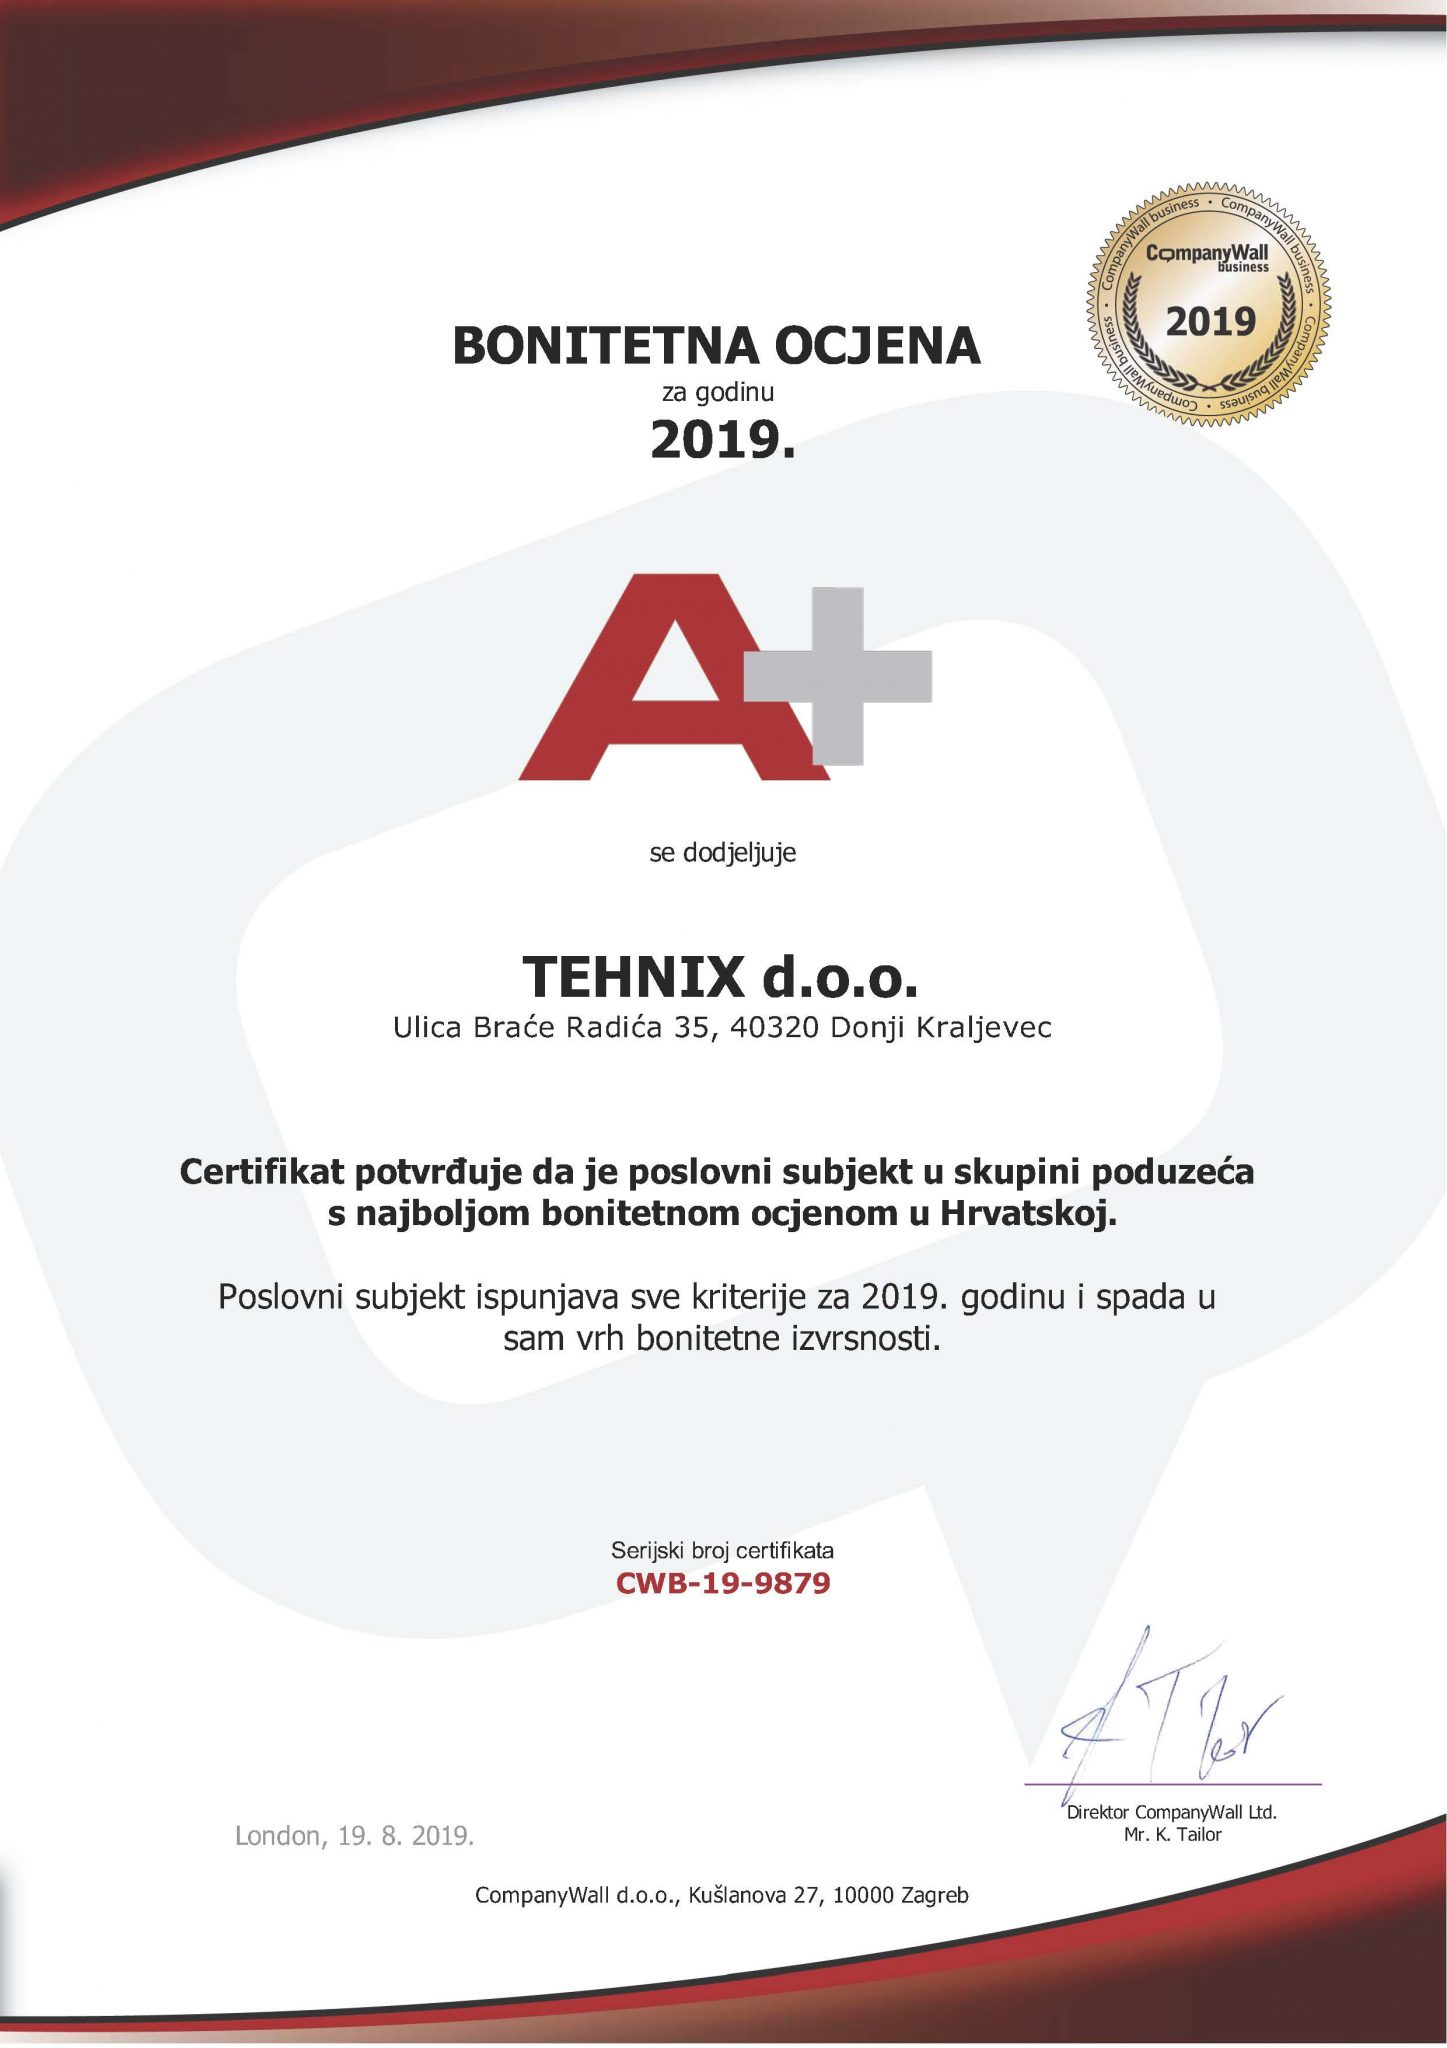 The company Tehnix was awarded A+ rating for 2019